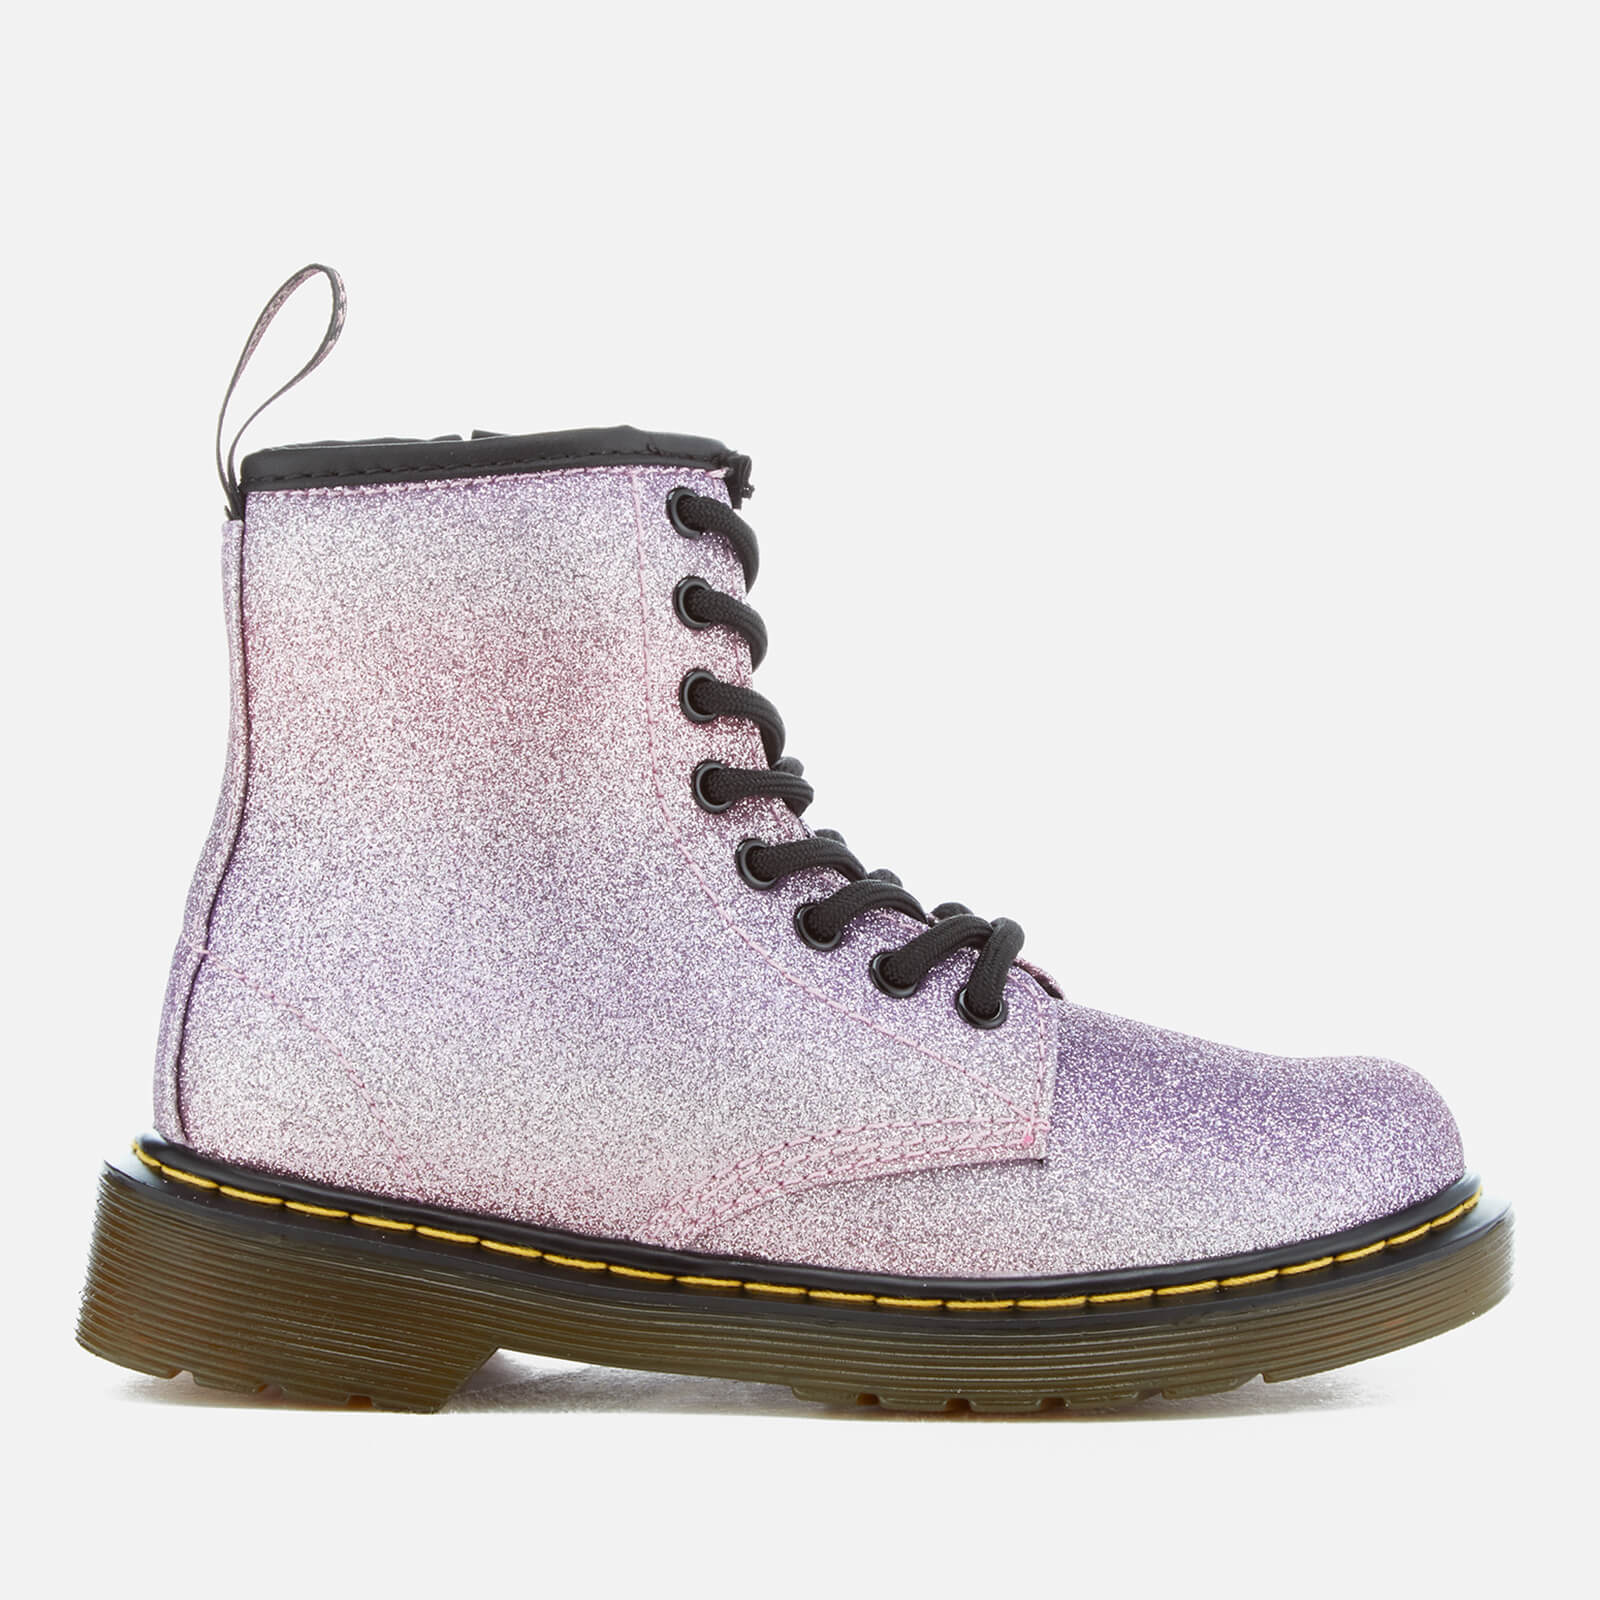 eb7249d44e364 Dr. Martens Kids' Delaney Glitter 8-Eye Lace Up Boots - Pink/Multi Junior  Clothing | TheHut.com